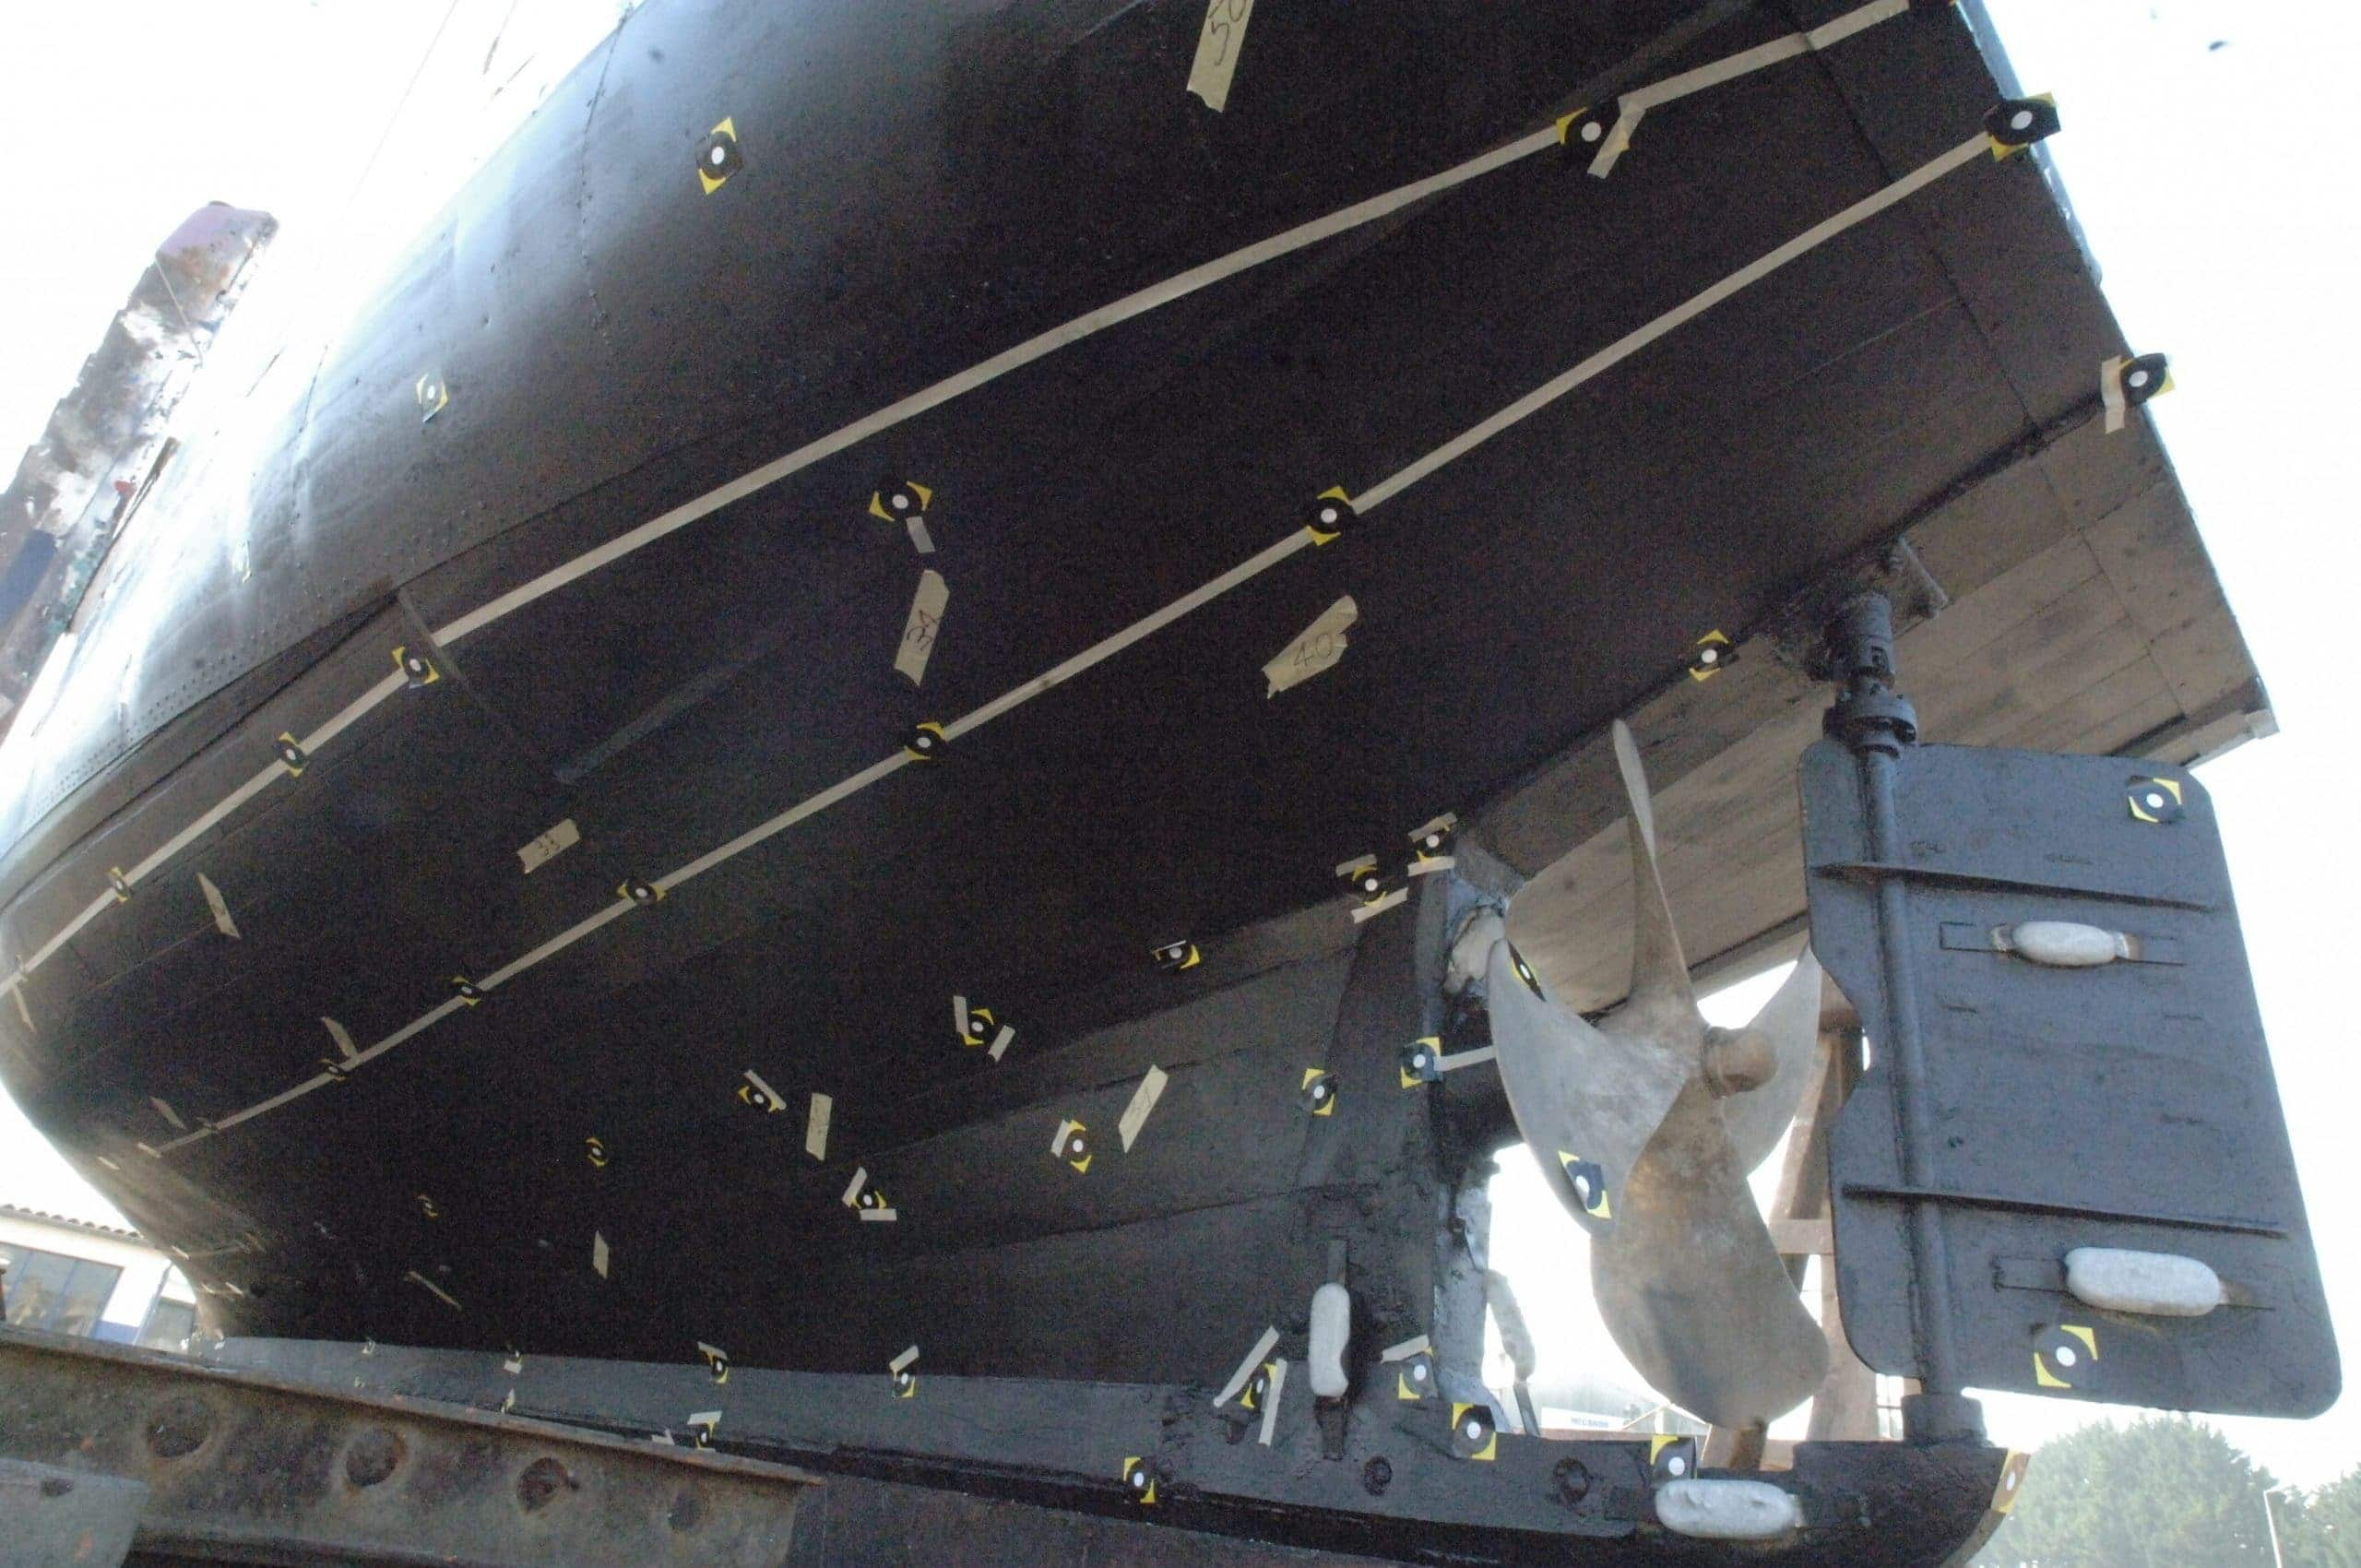 boat hull with targets